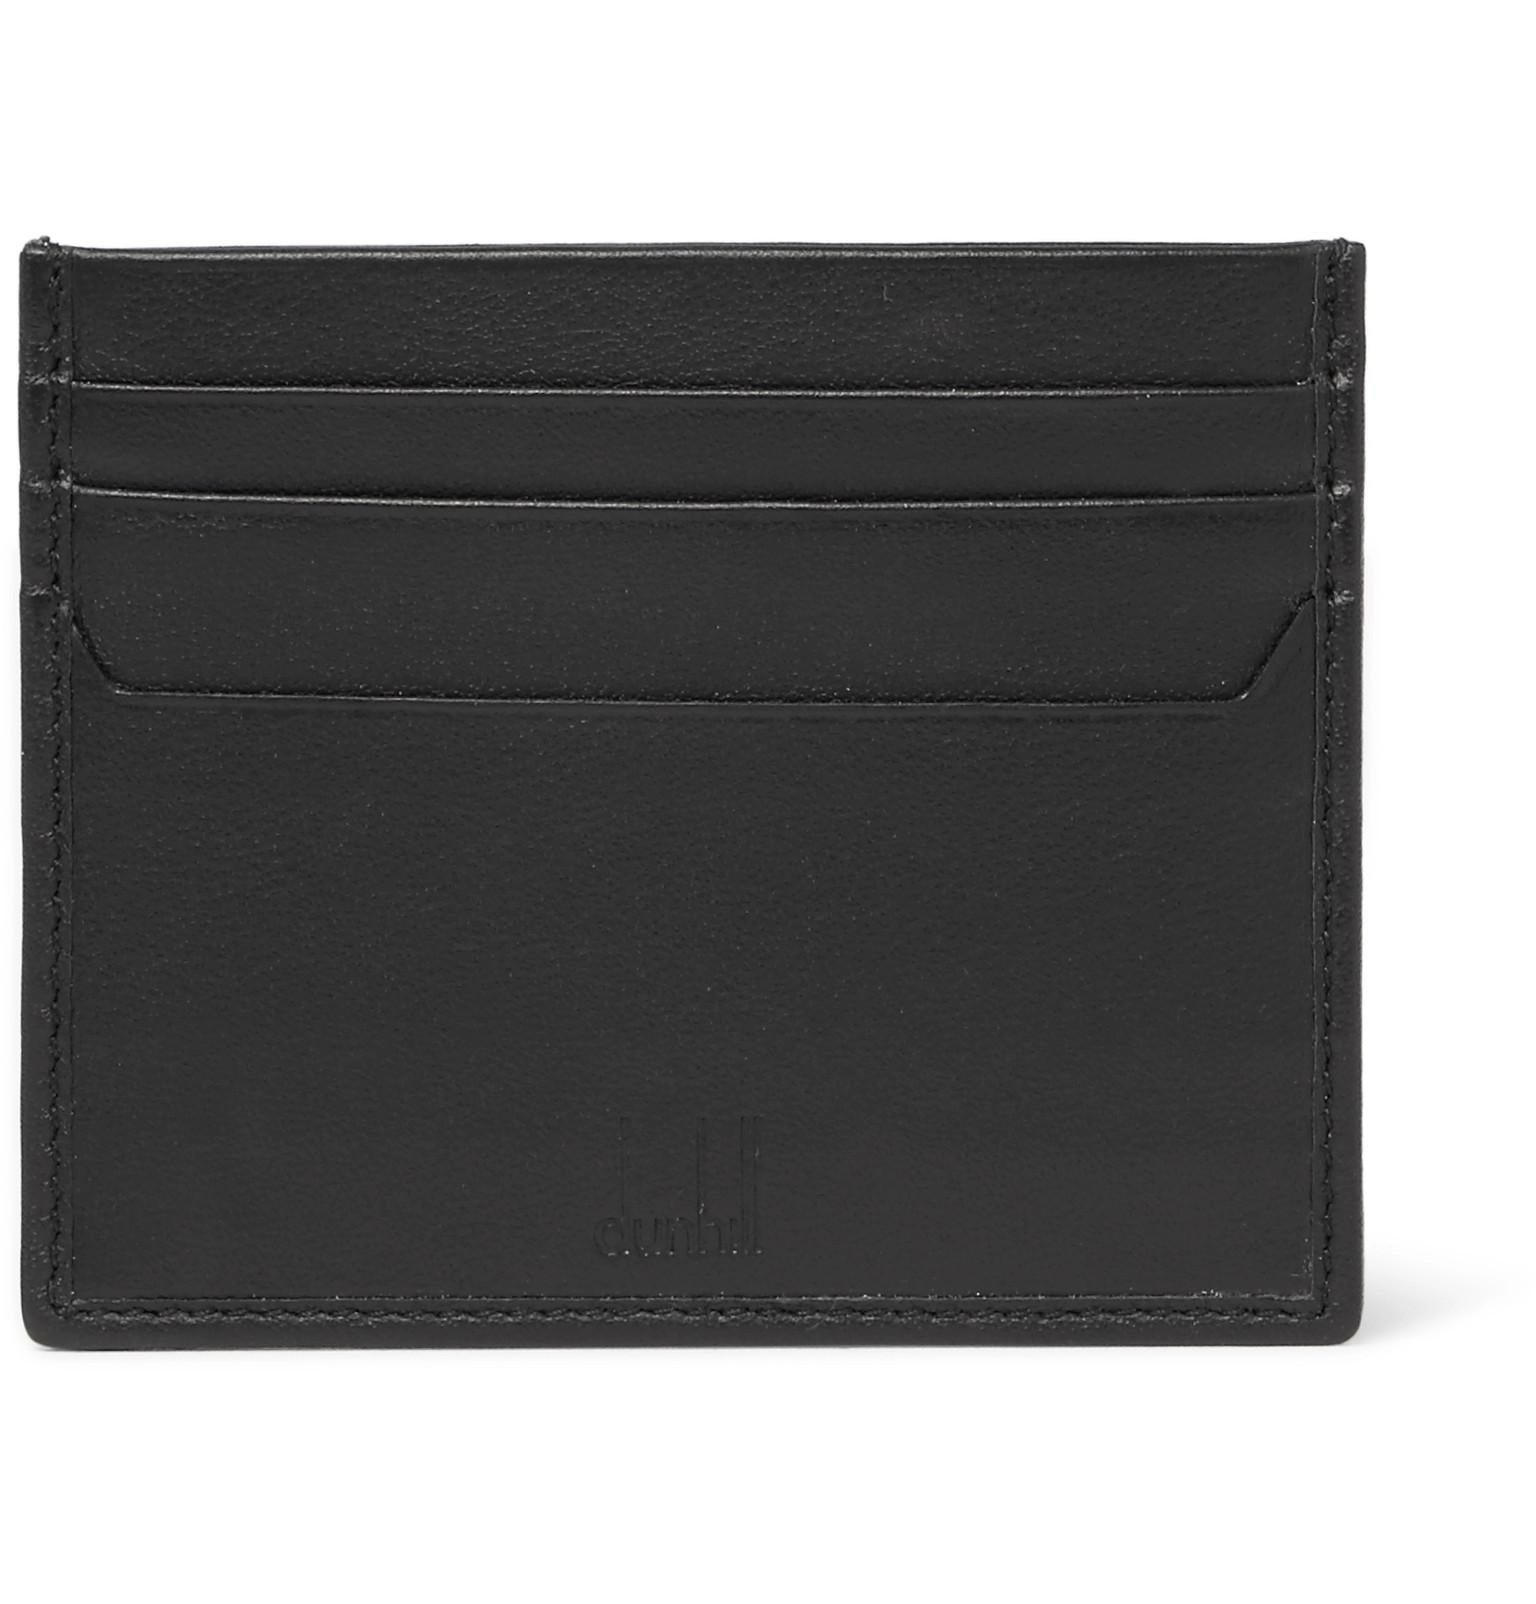 Dunhill Hampstead Leather Cardholder With Paypal For Sale ungEOJ